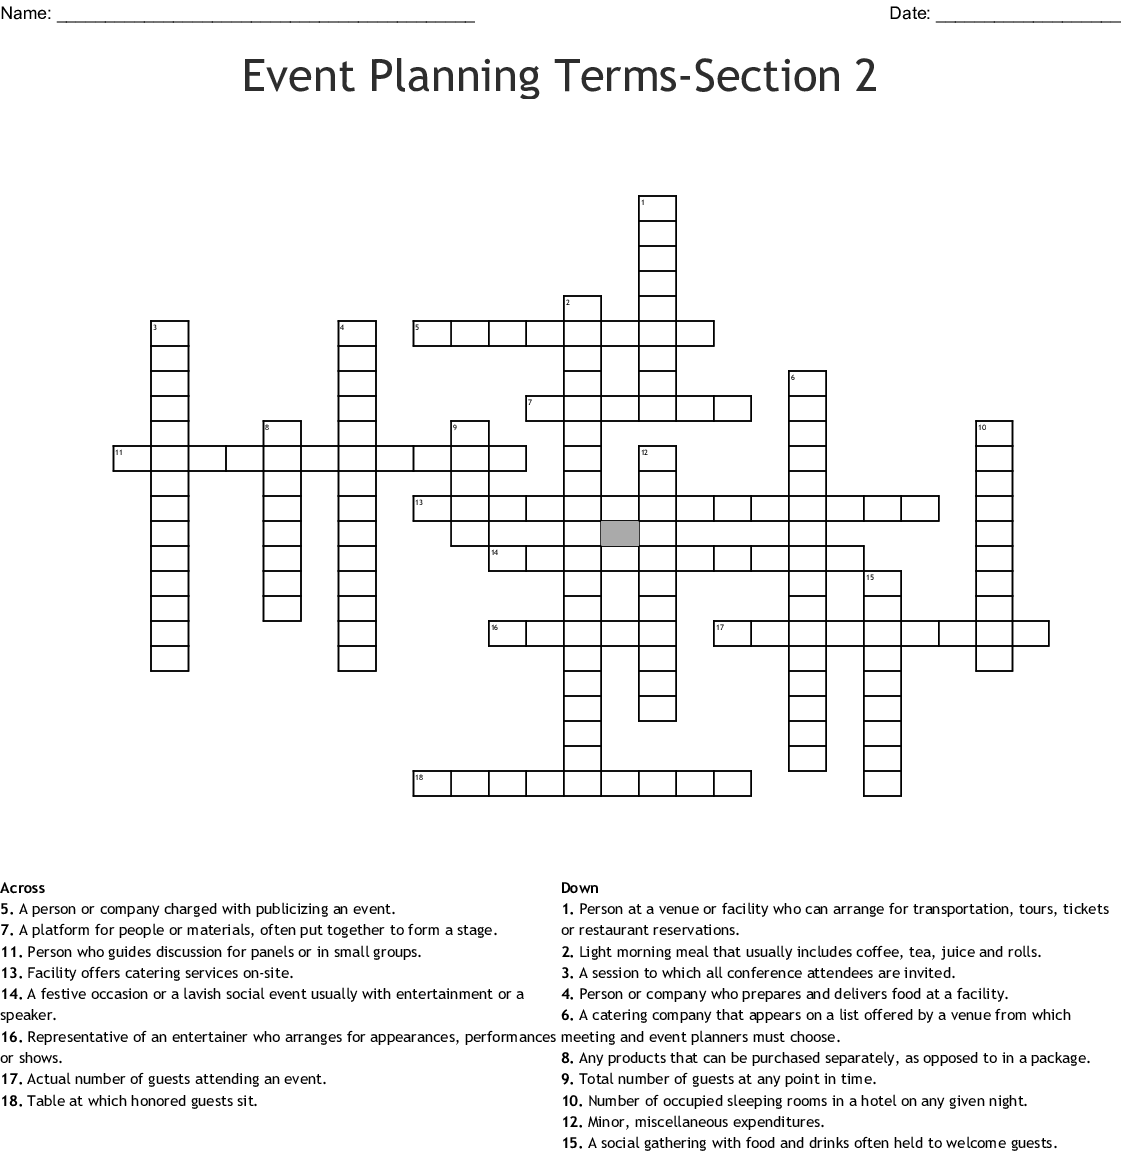 Event Planning Terms Section 2 Crossword Wordmint